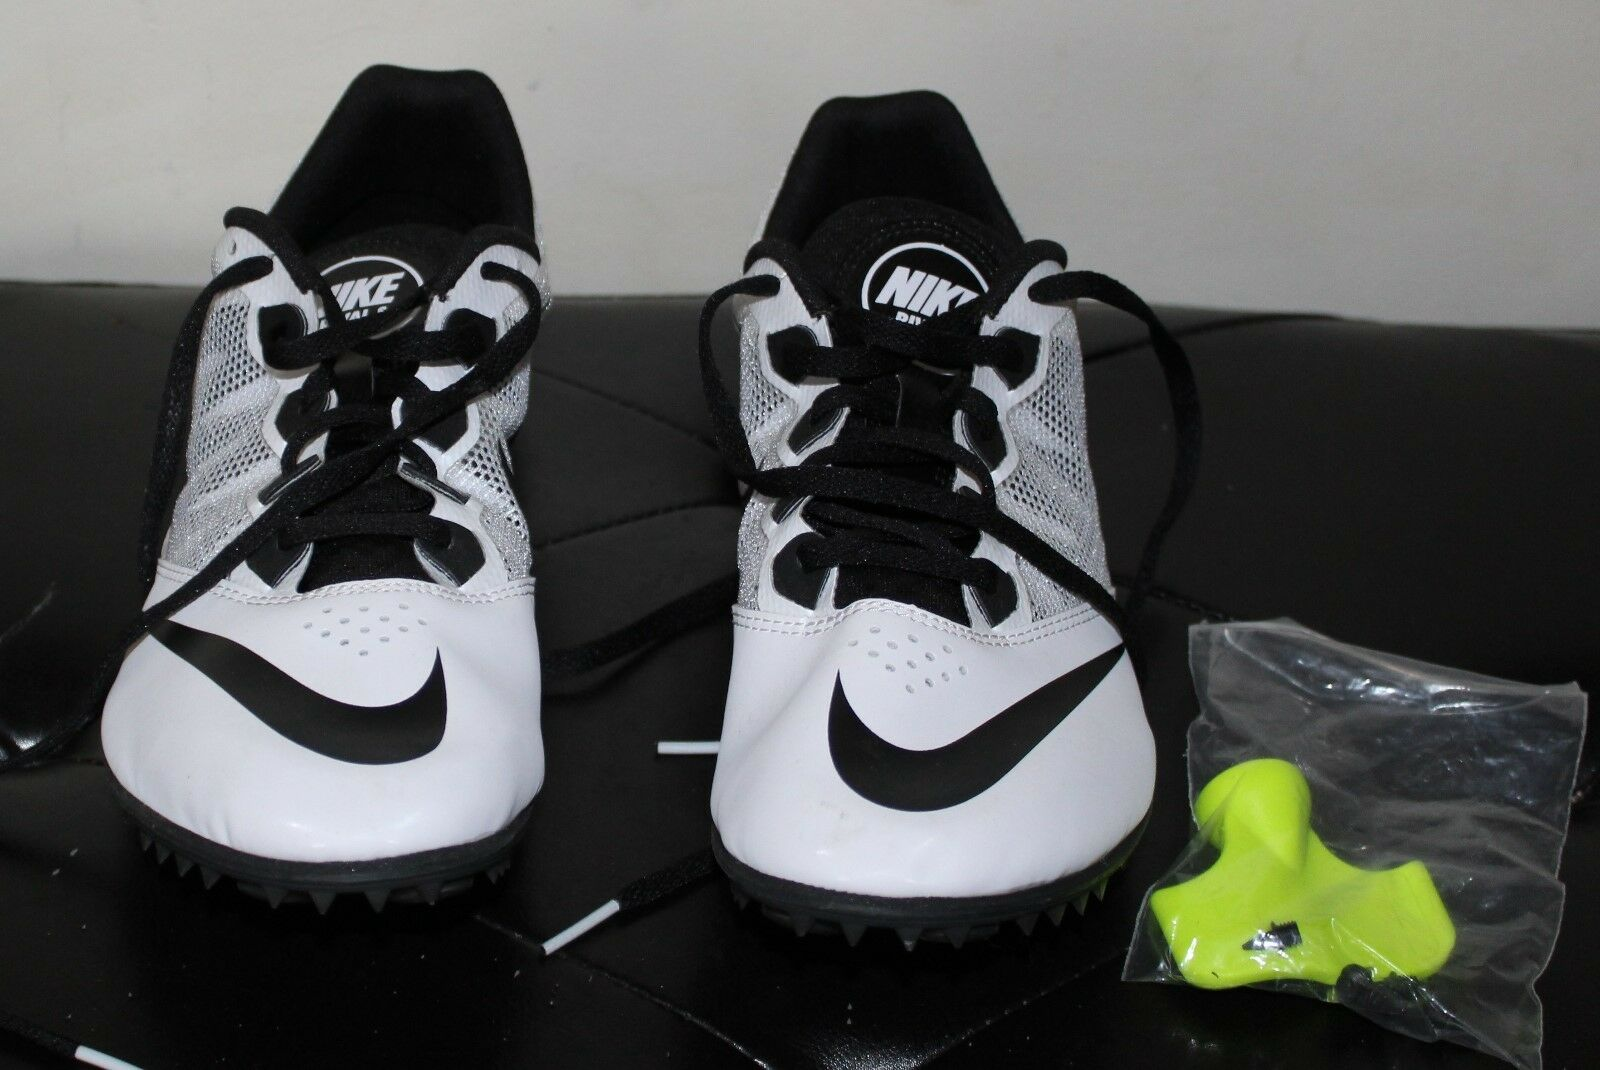 NIKE SPRINT RACING WHITE SHOES BLACK AND WHITE RACING SIZE 11 NO BOX OR TAGS 4a64a3